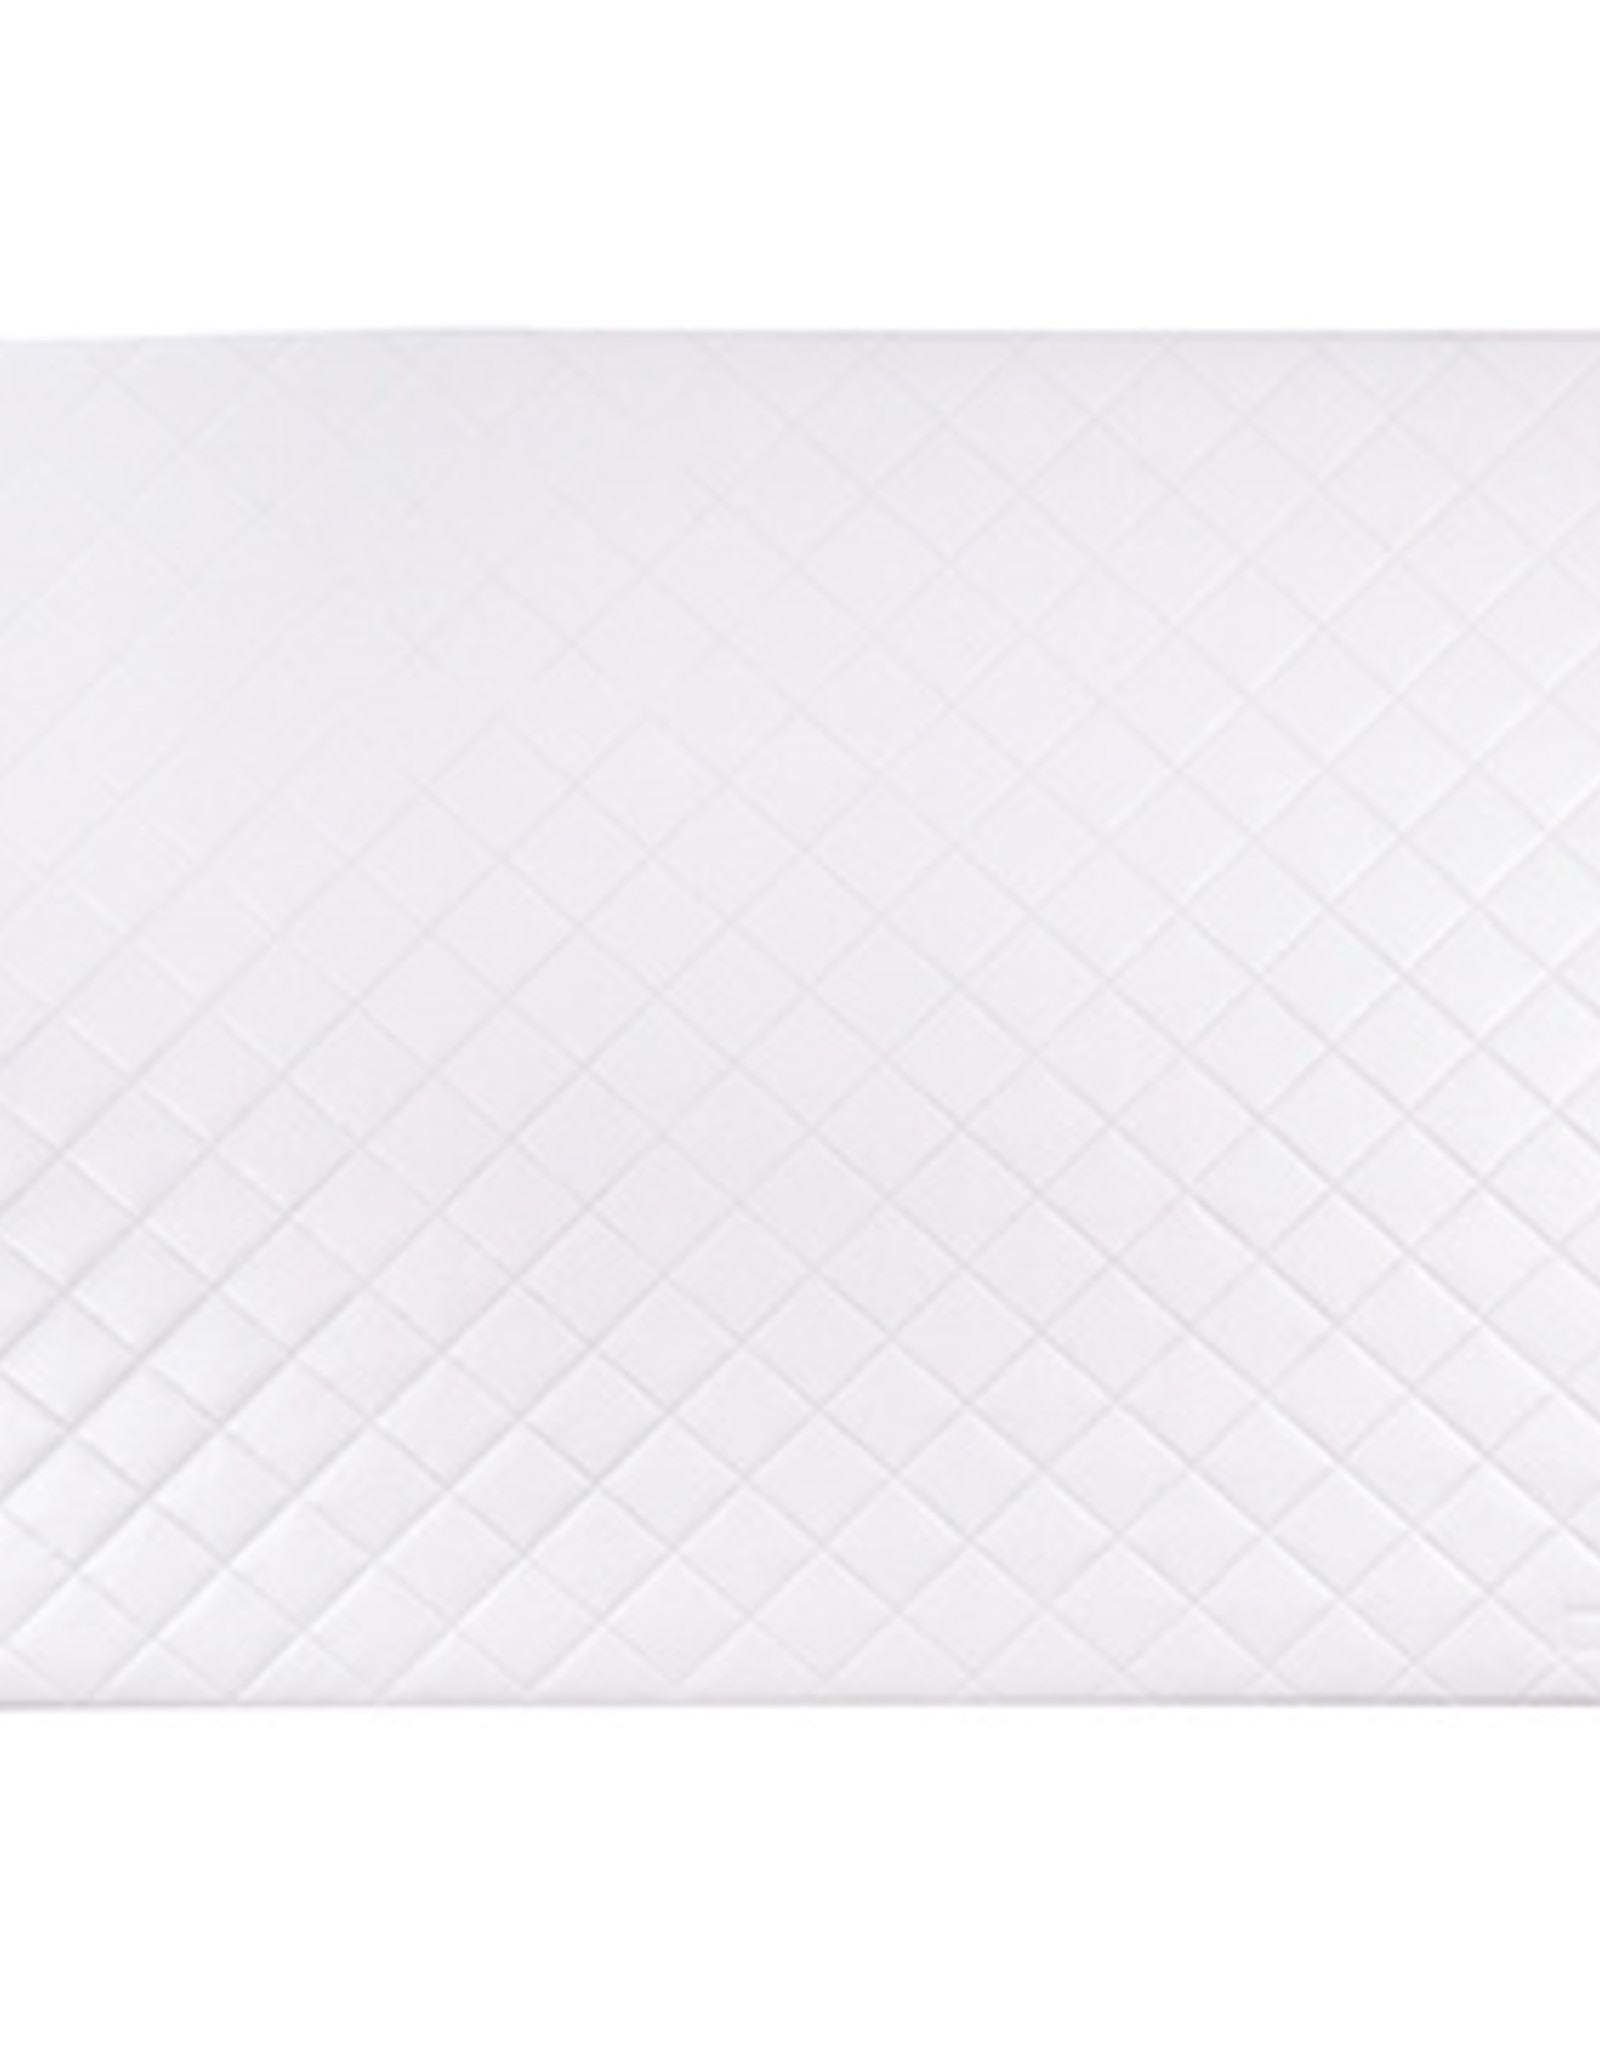 Quax Playpen Mat Pvc - Quilted - Lightshadow